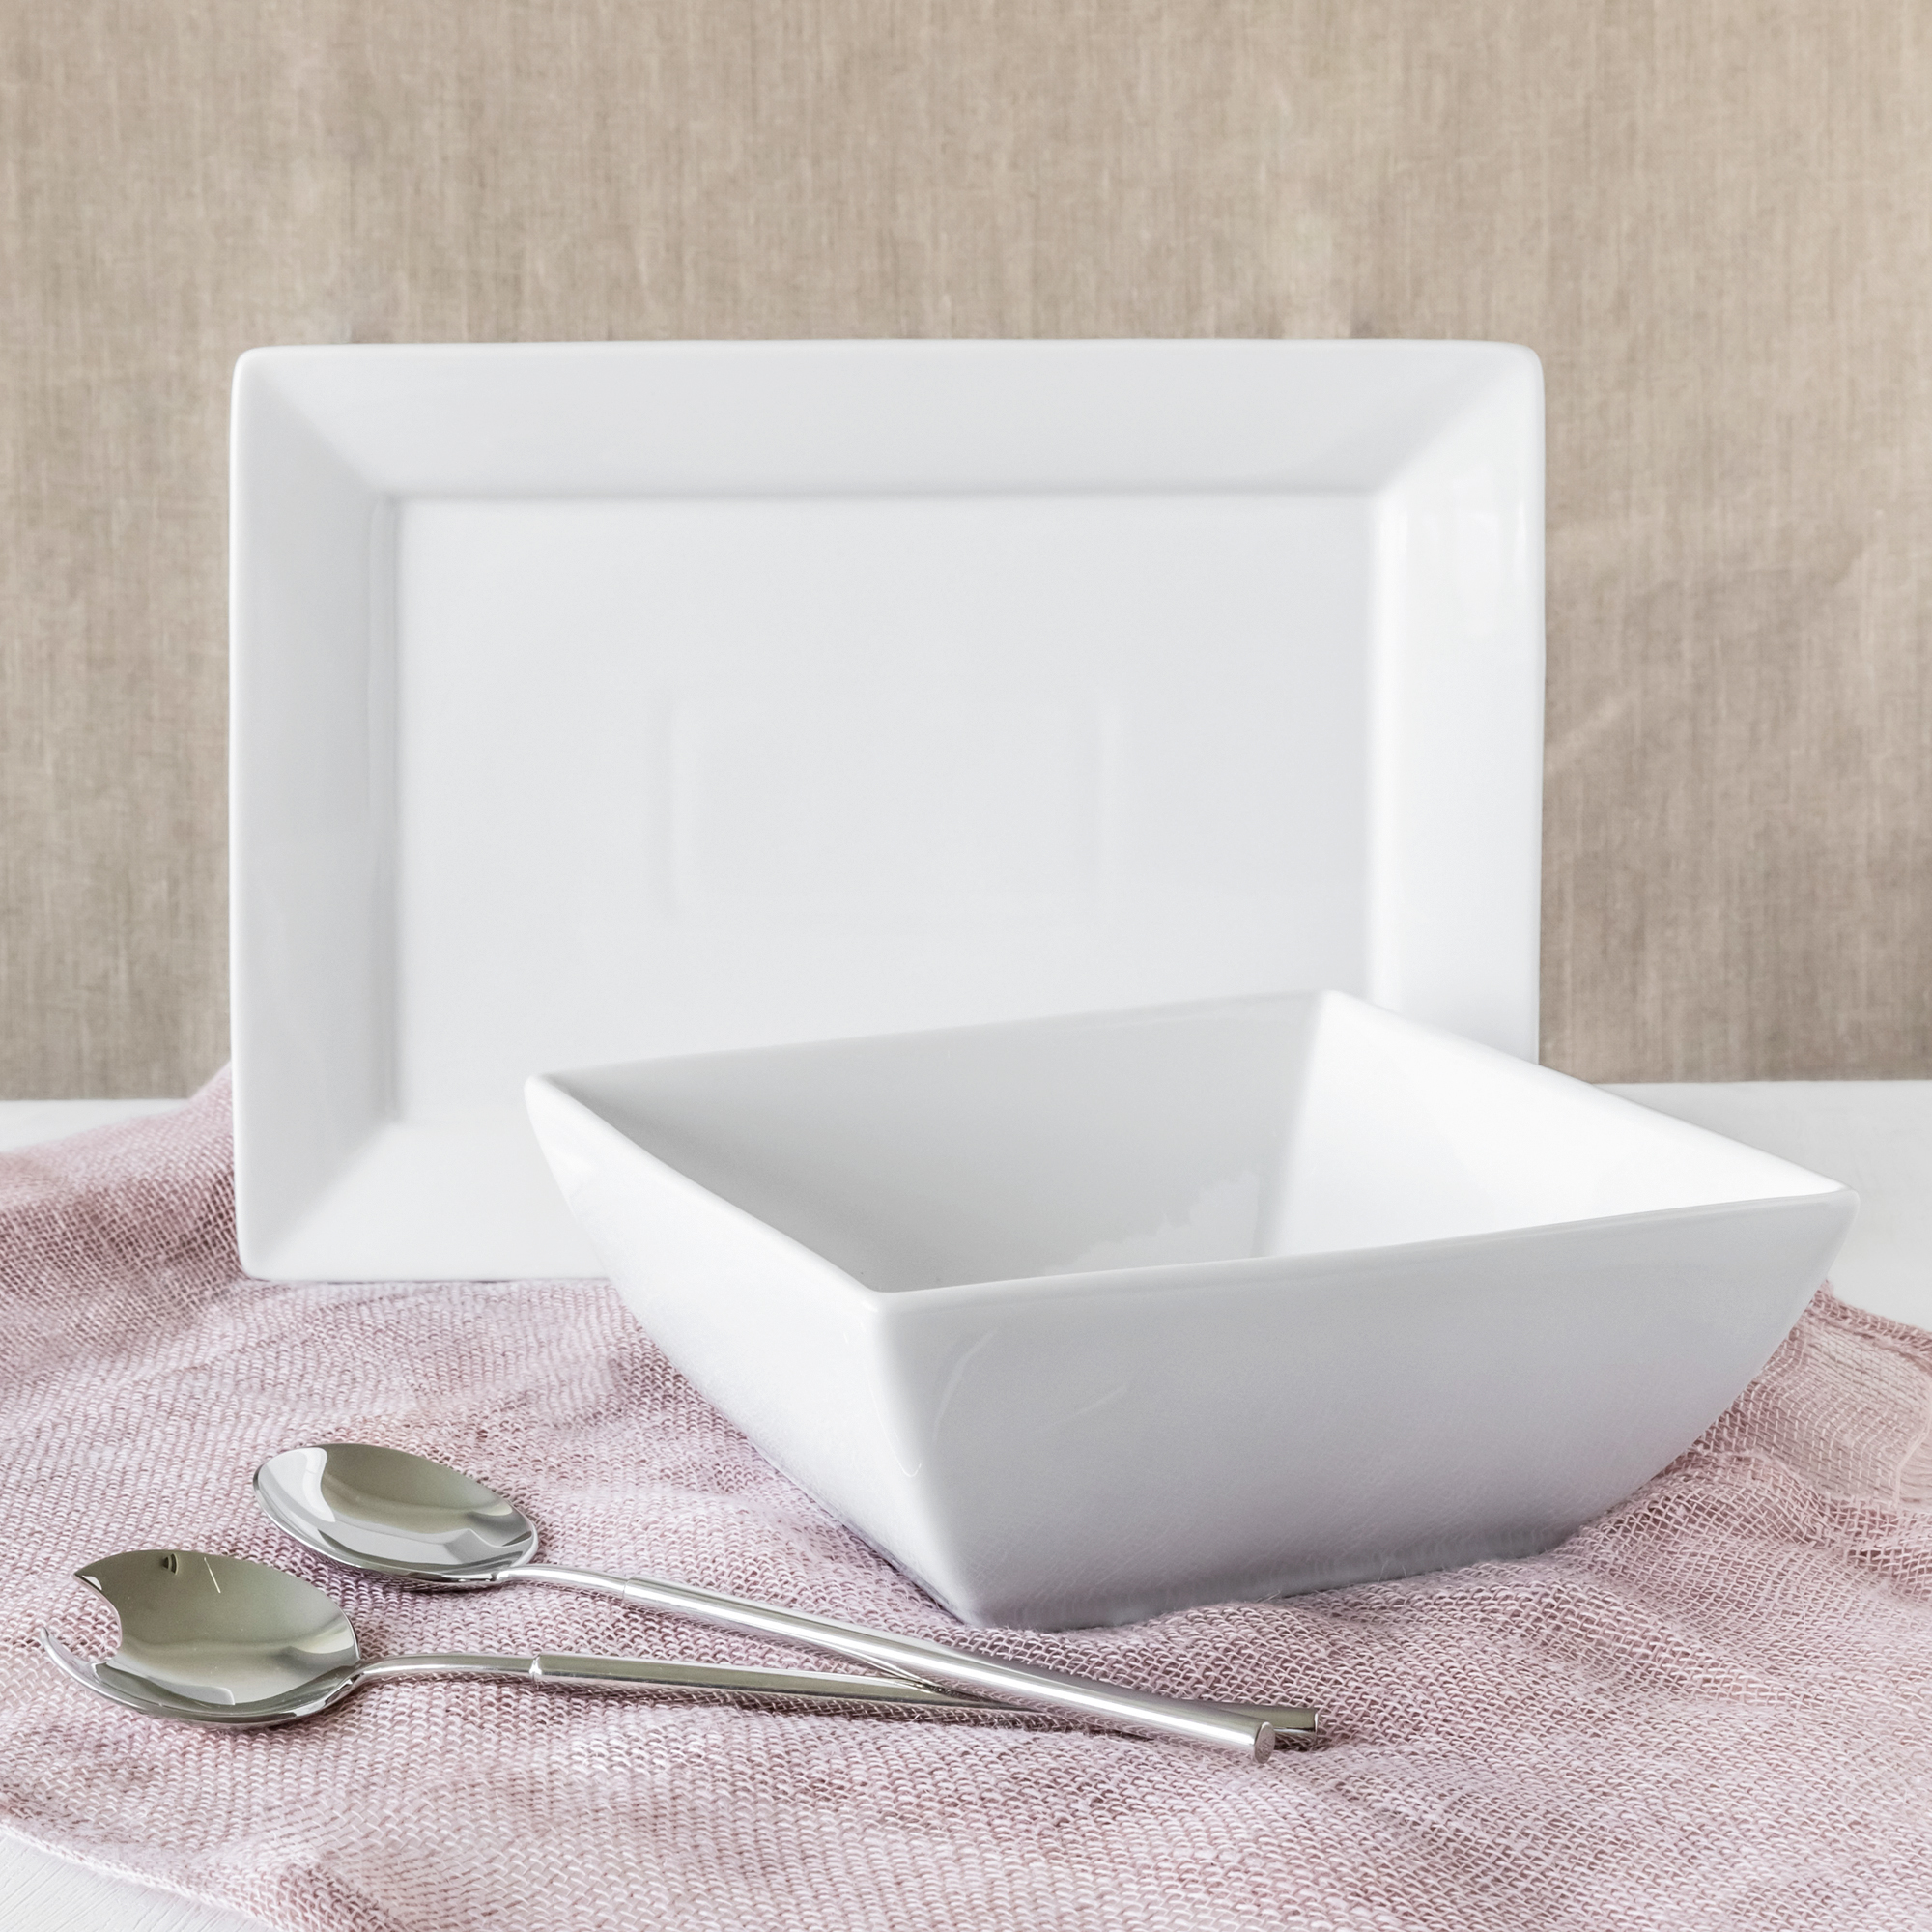 Better Homes and Gardens Square Bowl and Platter Set, White